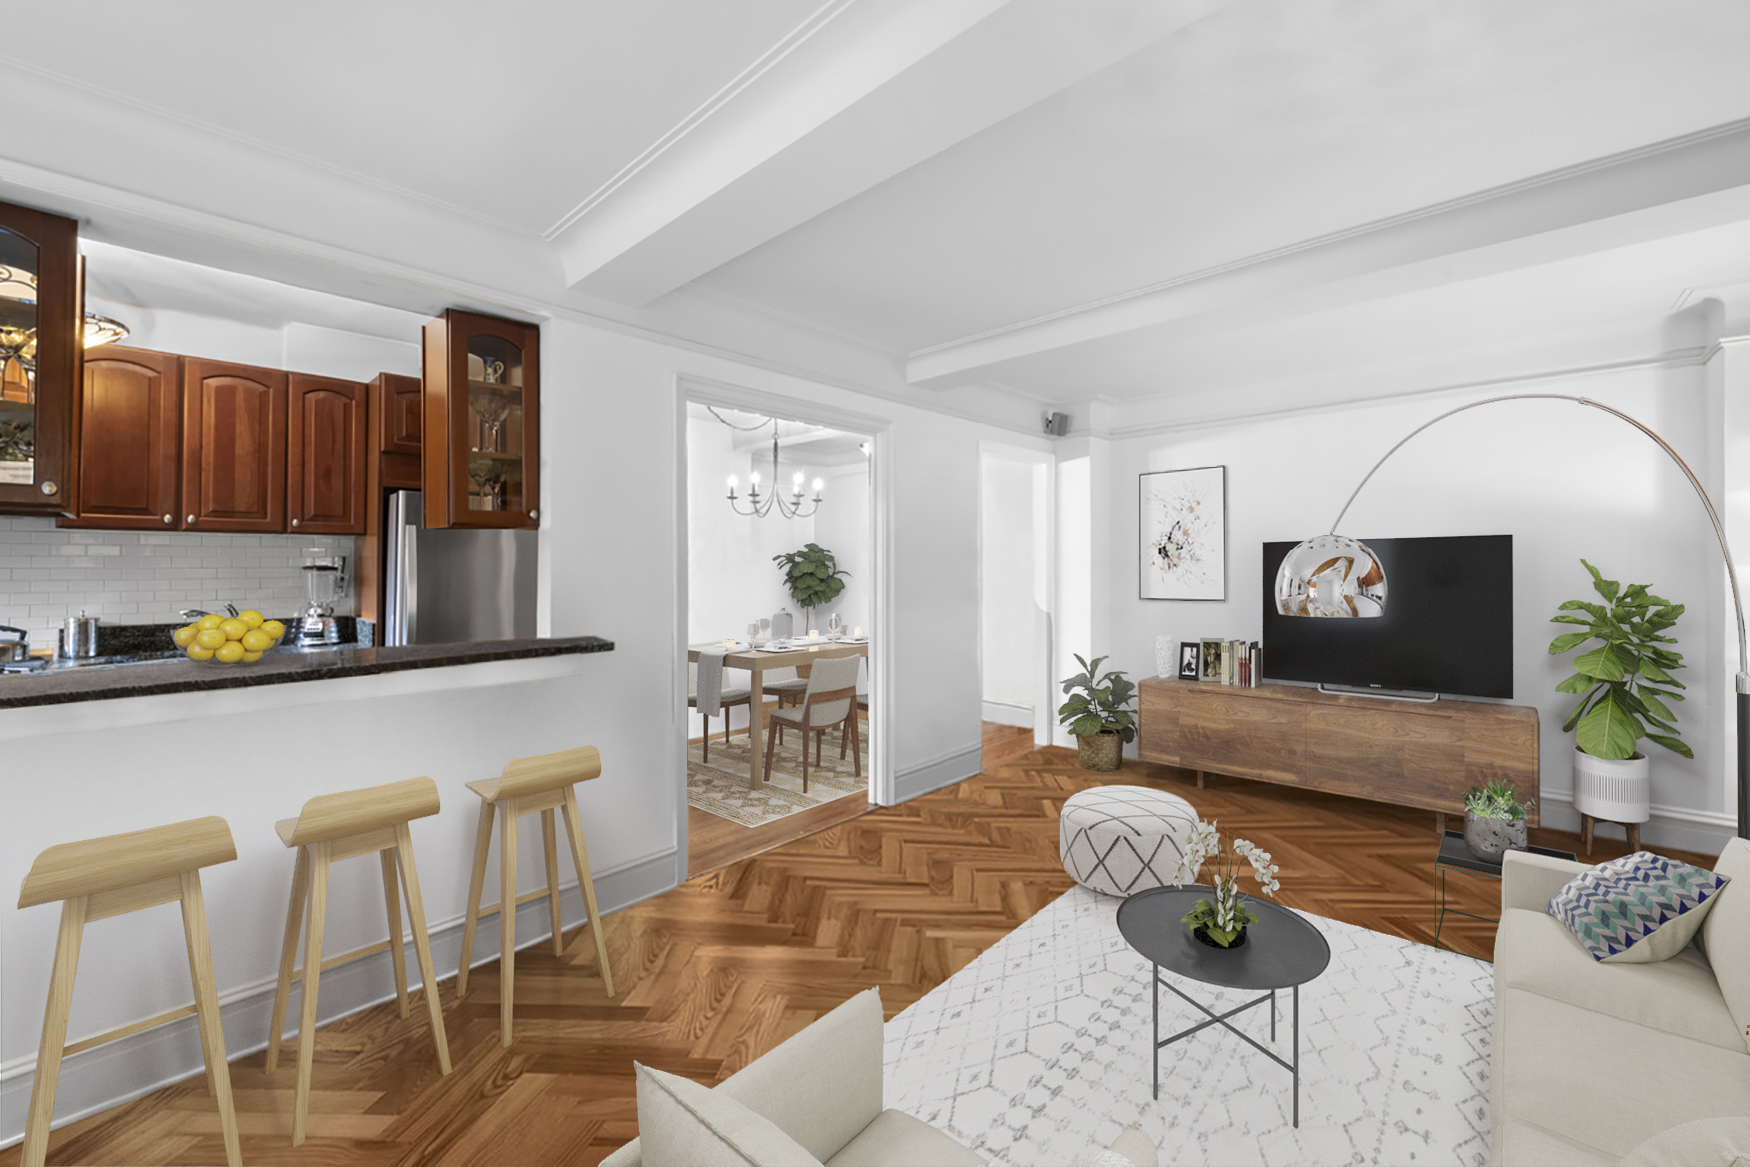 333 East 53rd Street Sutton Place New York NY 10022